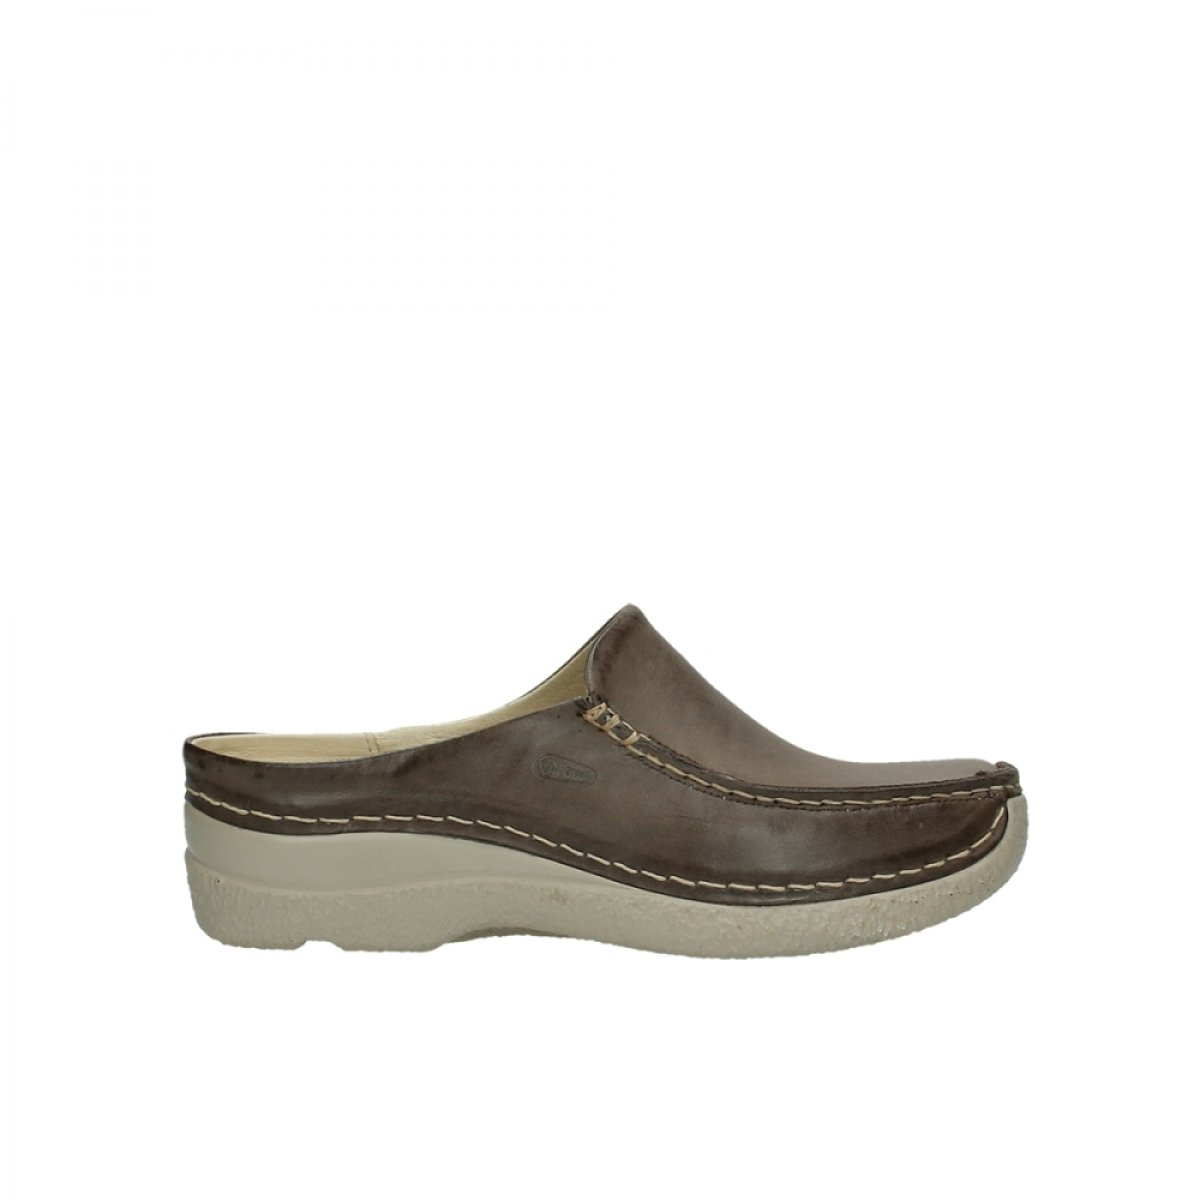 Grigio (315 taupe Leder) Wolky Seamy-Slide